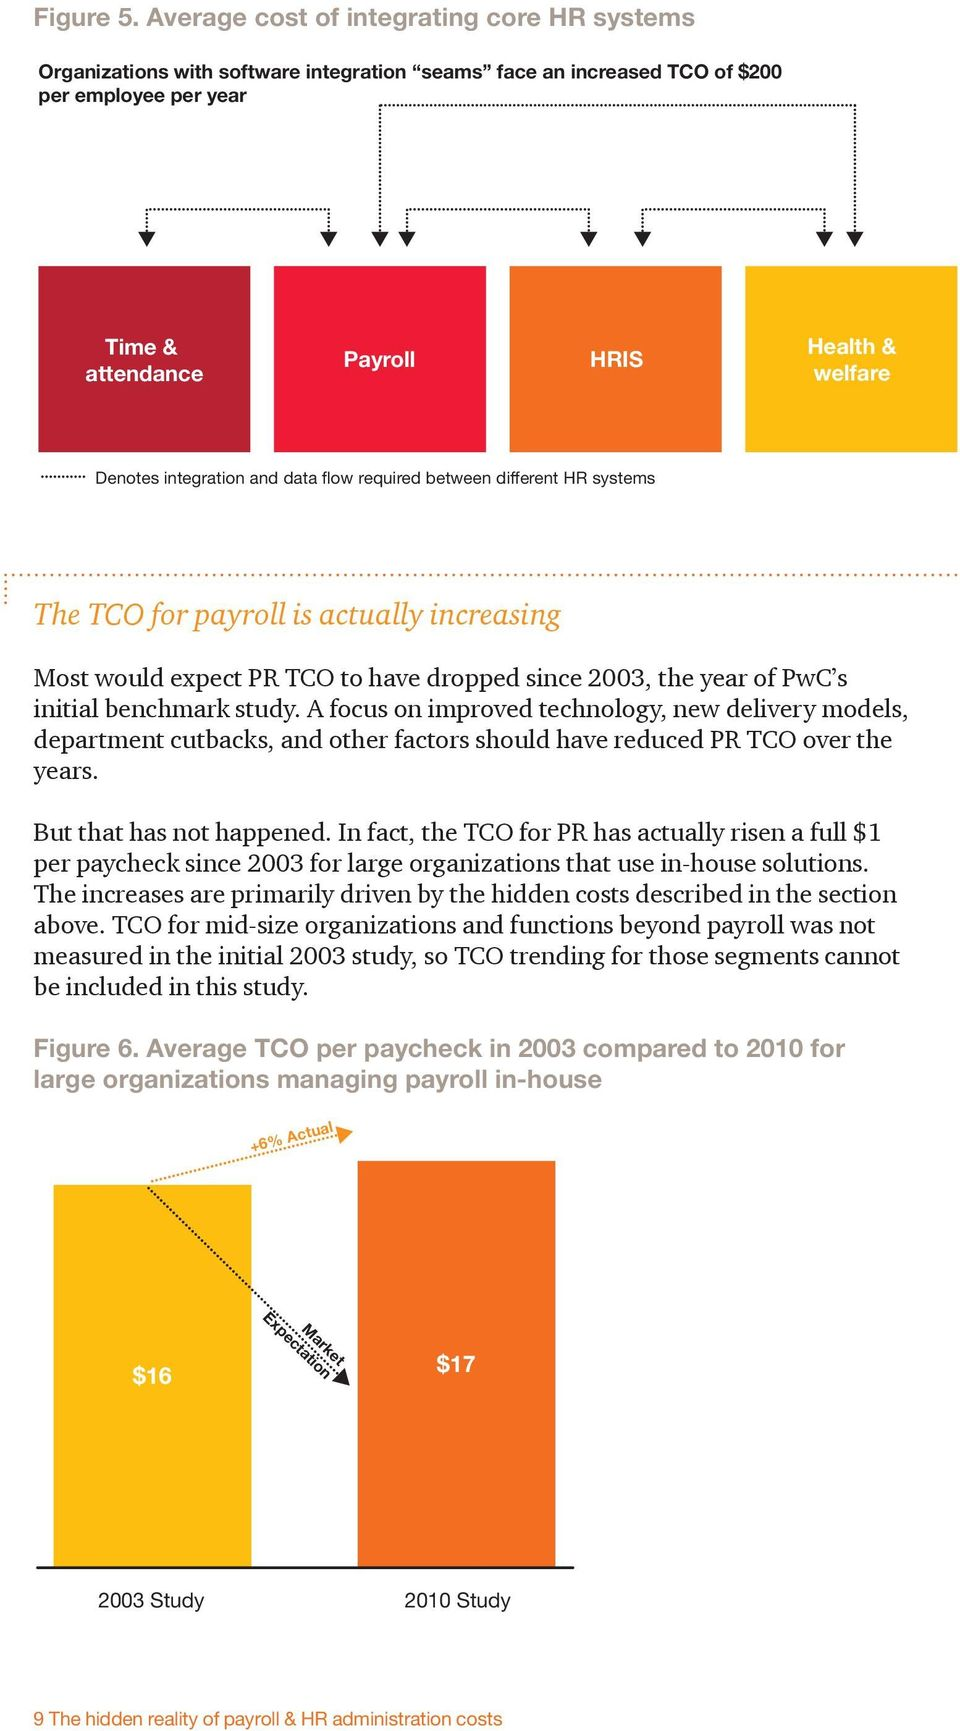 integration and data flow required between different HR systems The TCO for payroll is actually increasing Most would expect PR TCO to have dropped since 2003, the year of PwC s initial benchmark